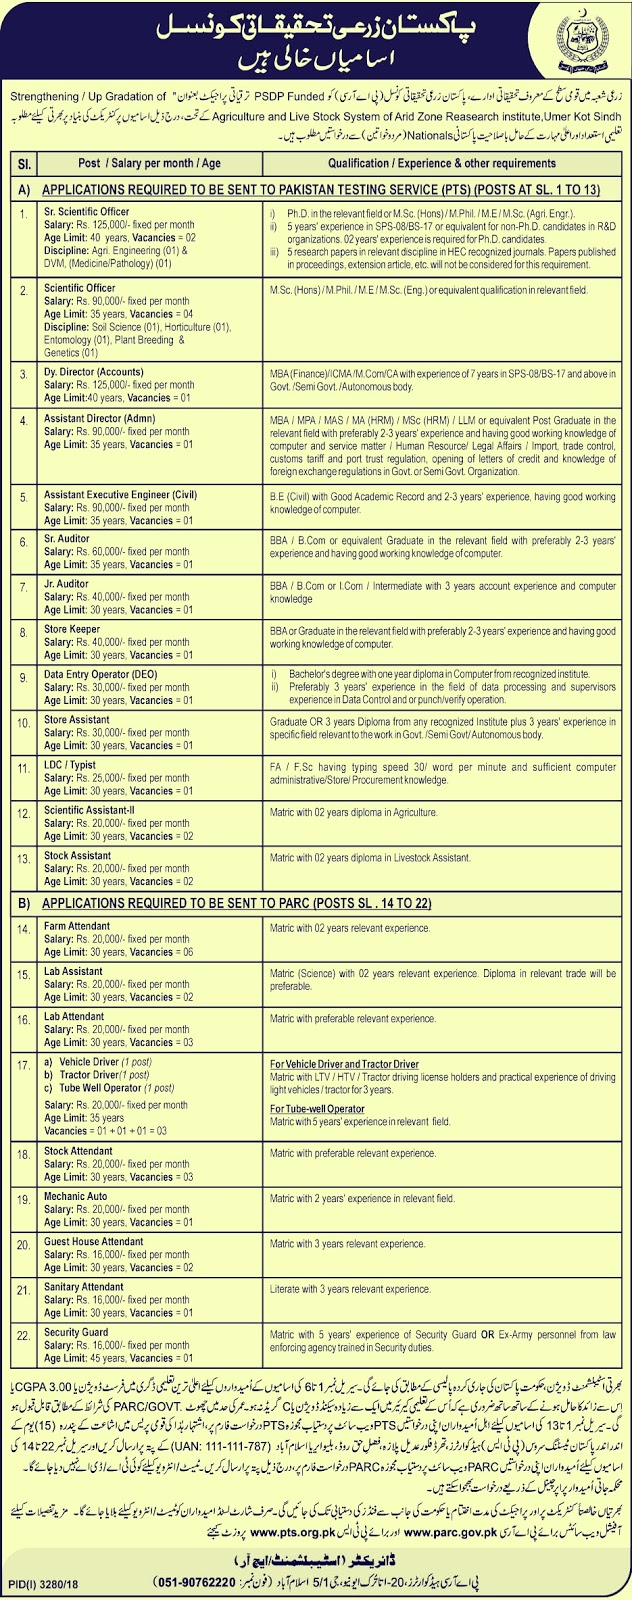 Pakistan Agriculture Research Council New Jobs 2019 | Multiple Vacancies